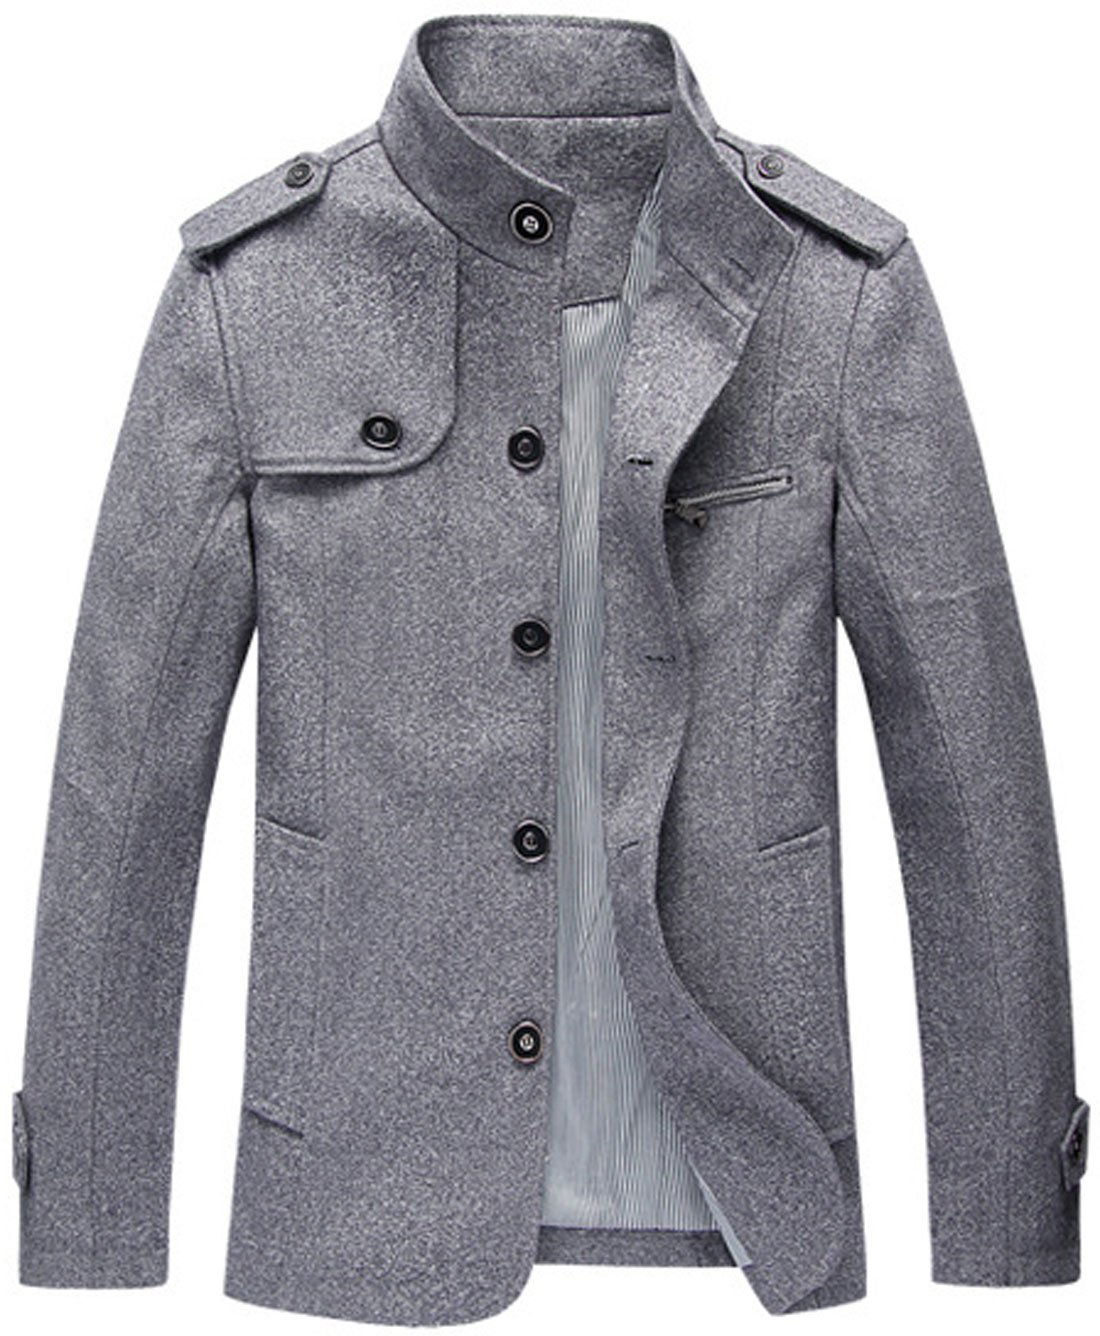 Chouyatou Men's Military Stylish Single Breasted Natural Fit Stripe Lined Wool Pea Coats (Medium, Grey)